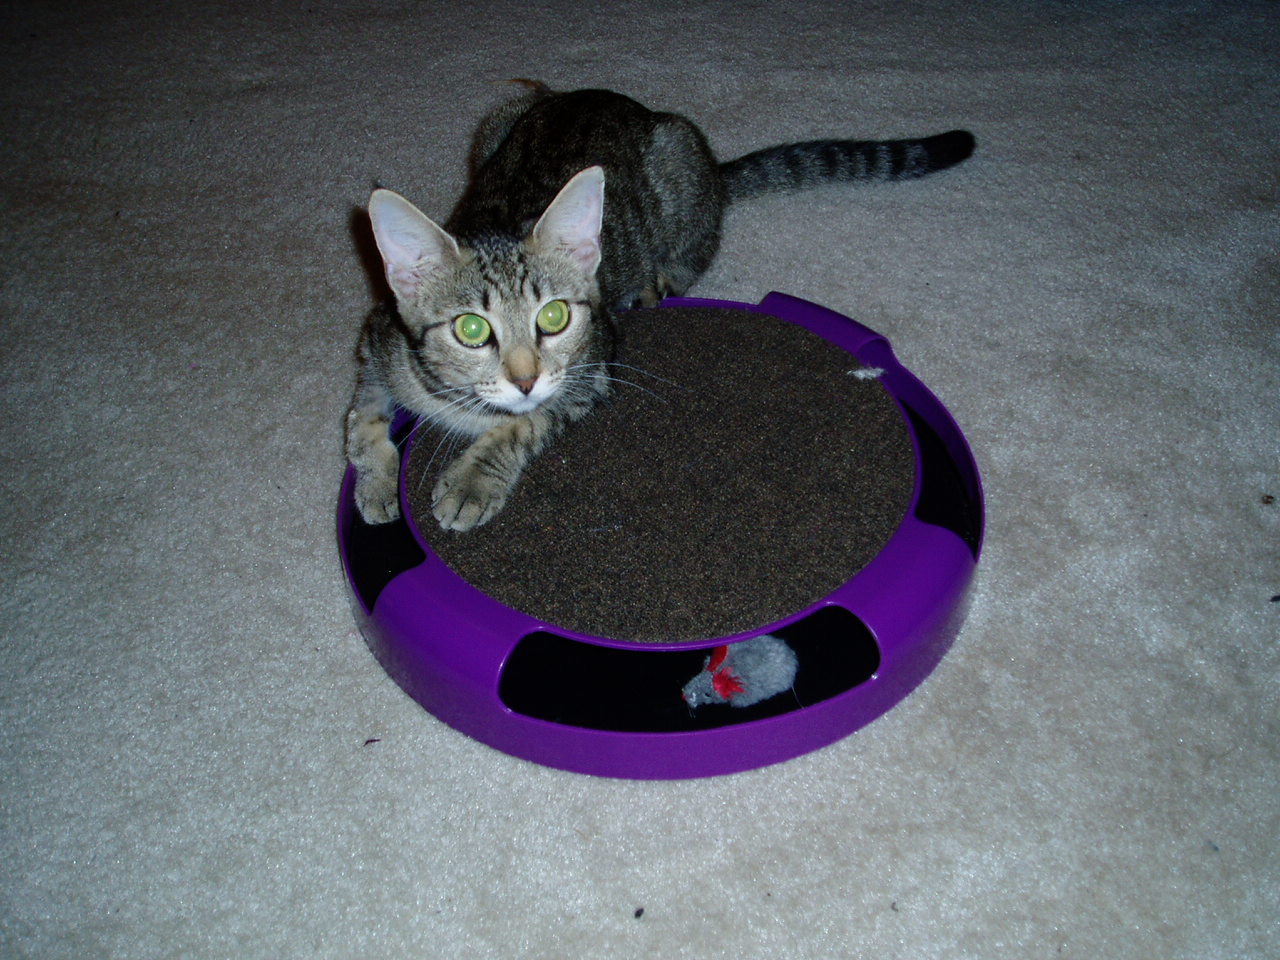 Little Ashley and the spinning mousie toy